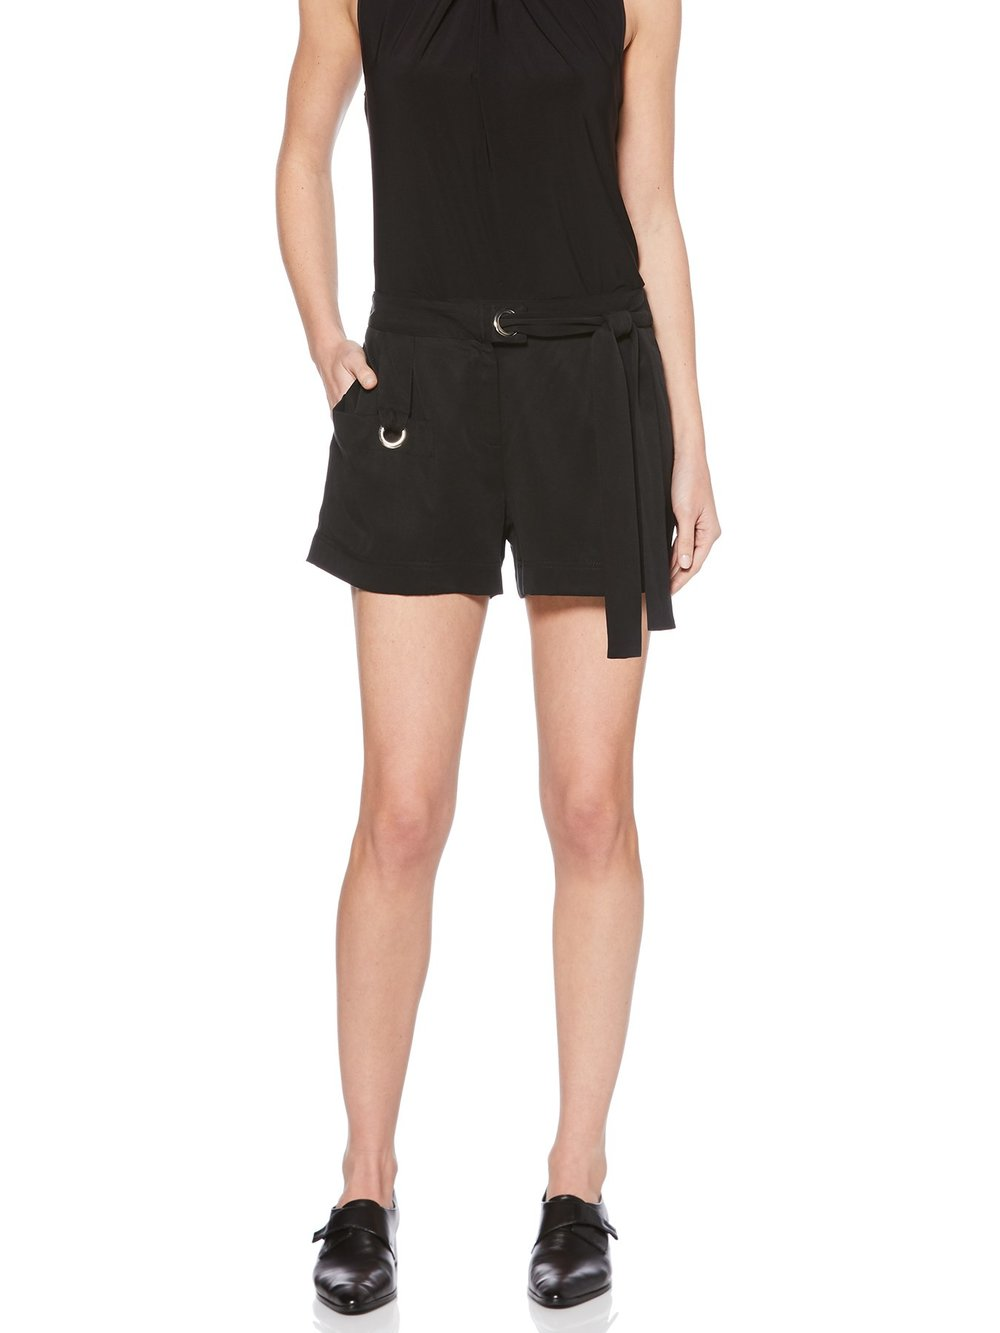 This brand goes up to size 16 and includes jewelry and swimwear. TIE BELT SHORT WITH METAL DETAILS. Available in black, tan. Shelli Segal. Was: $69.